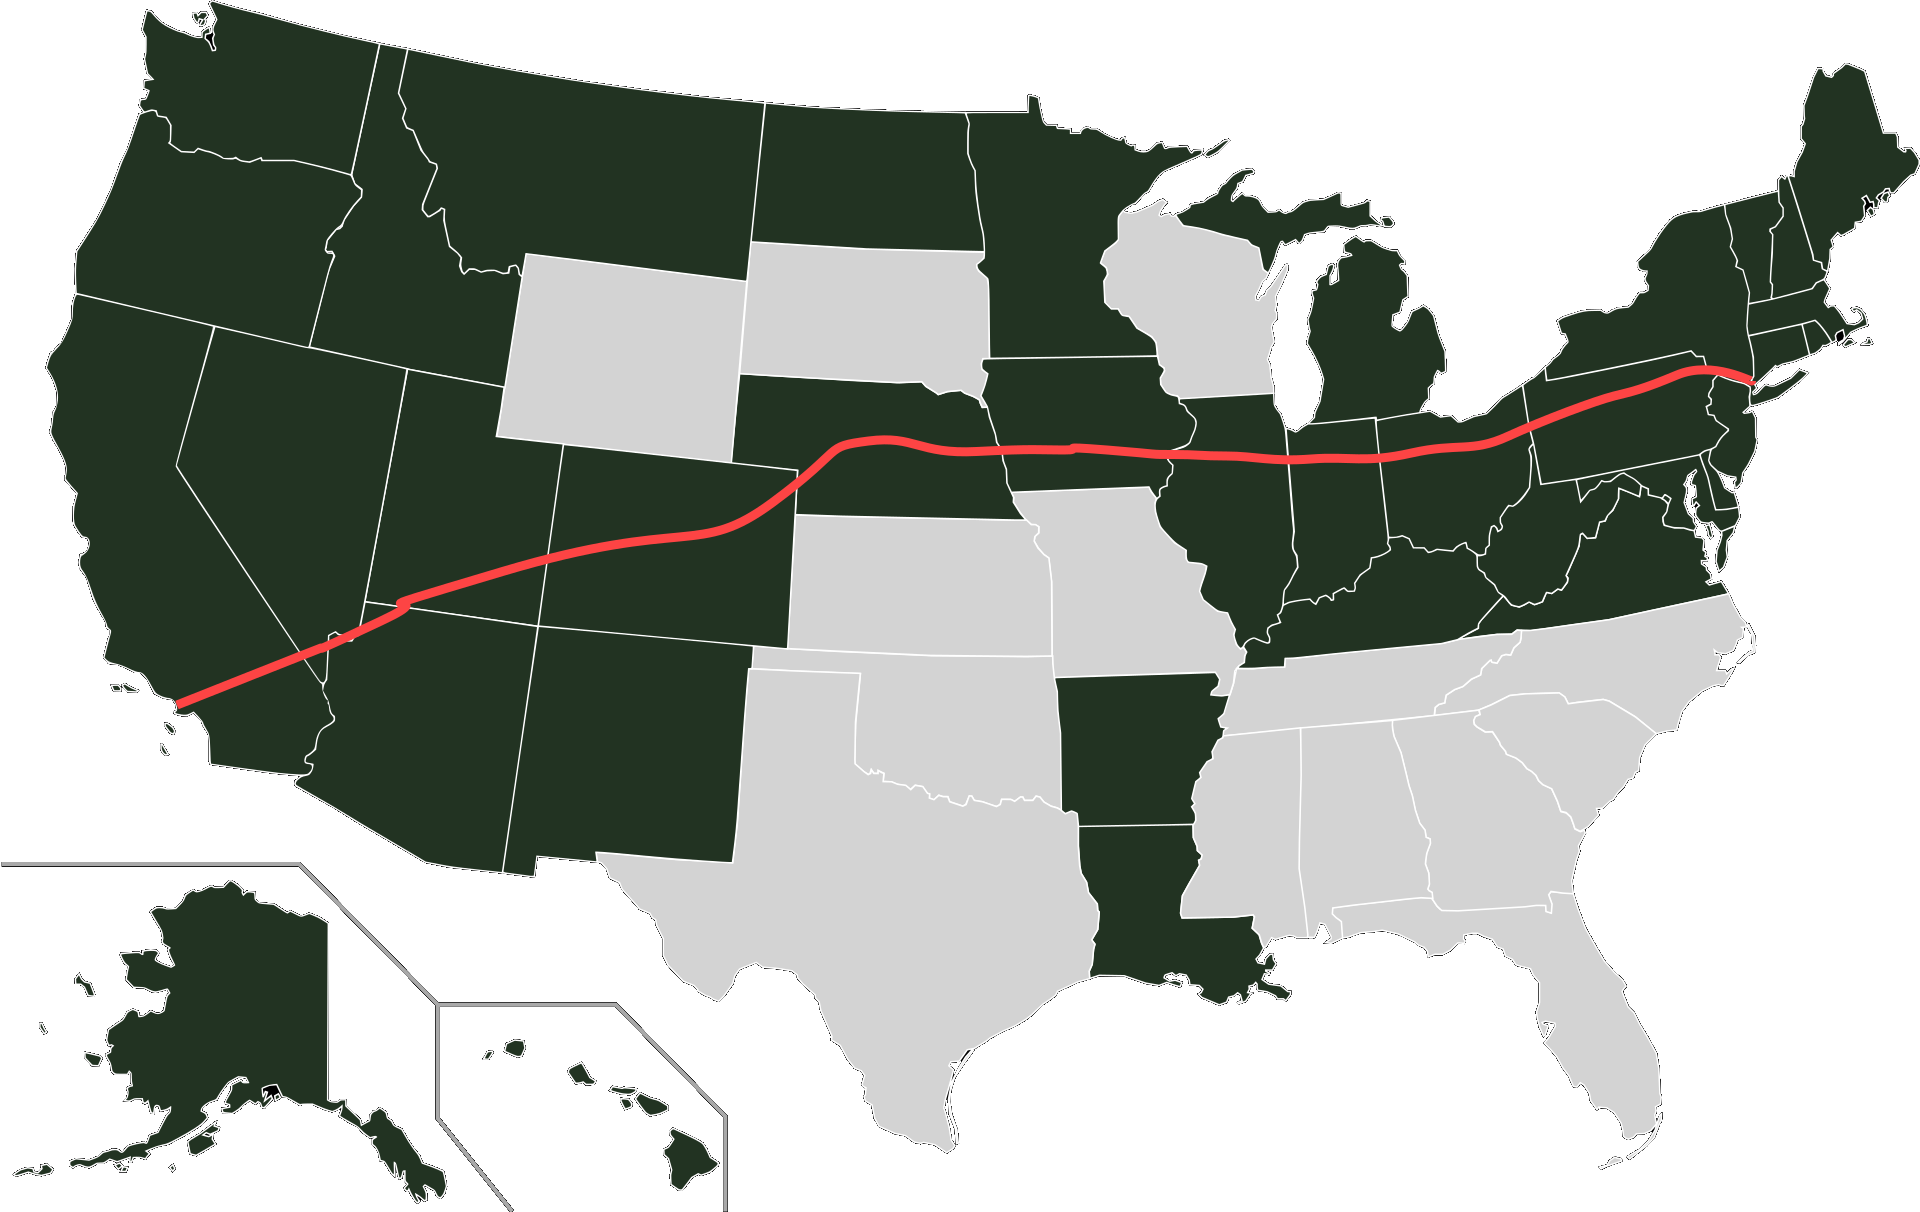 You Can Now Travel From West To East Coast Via States With